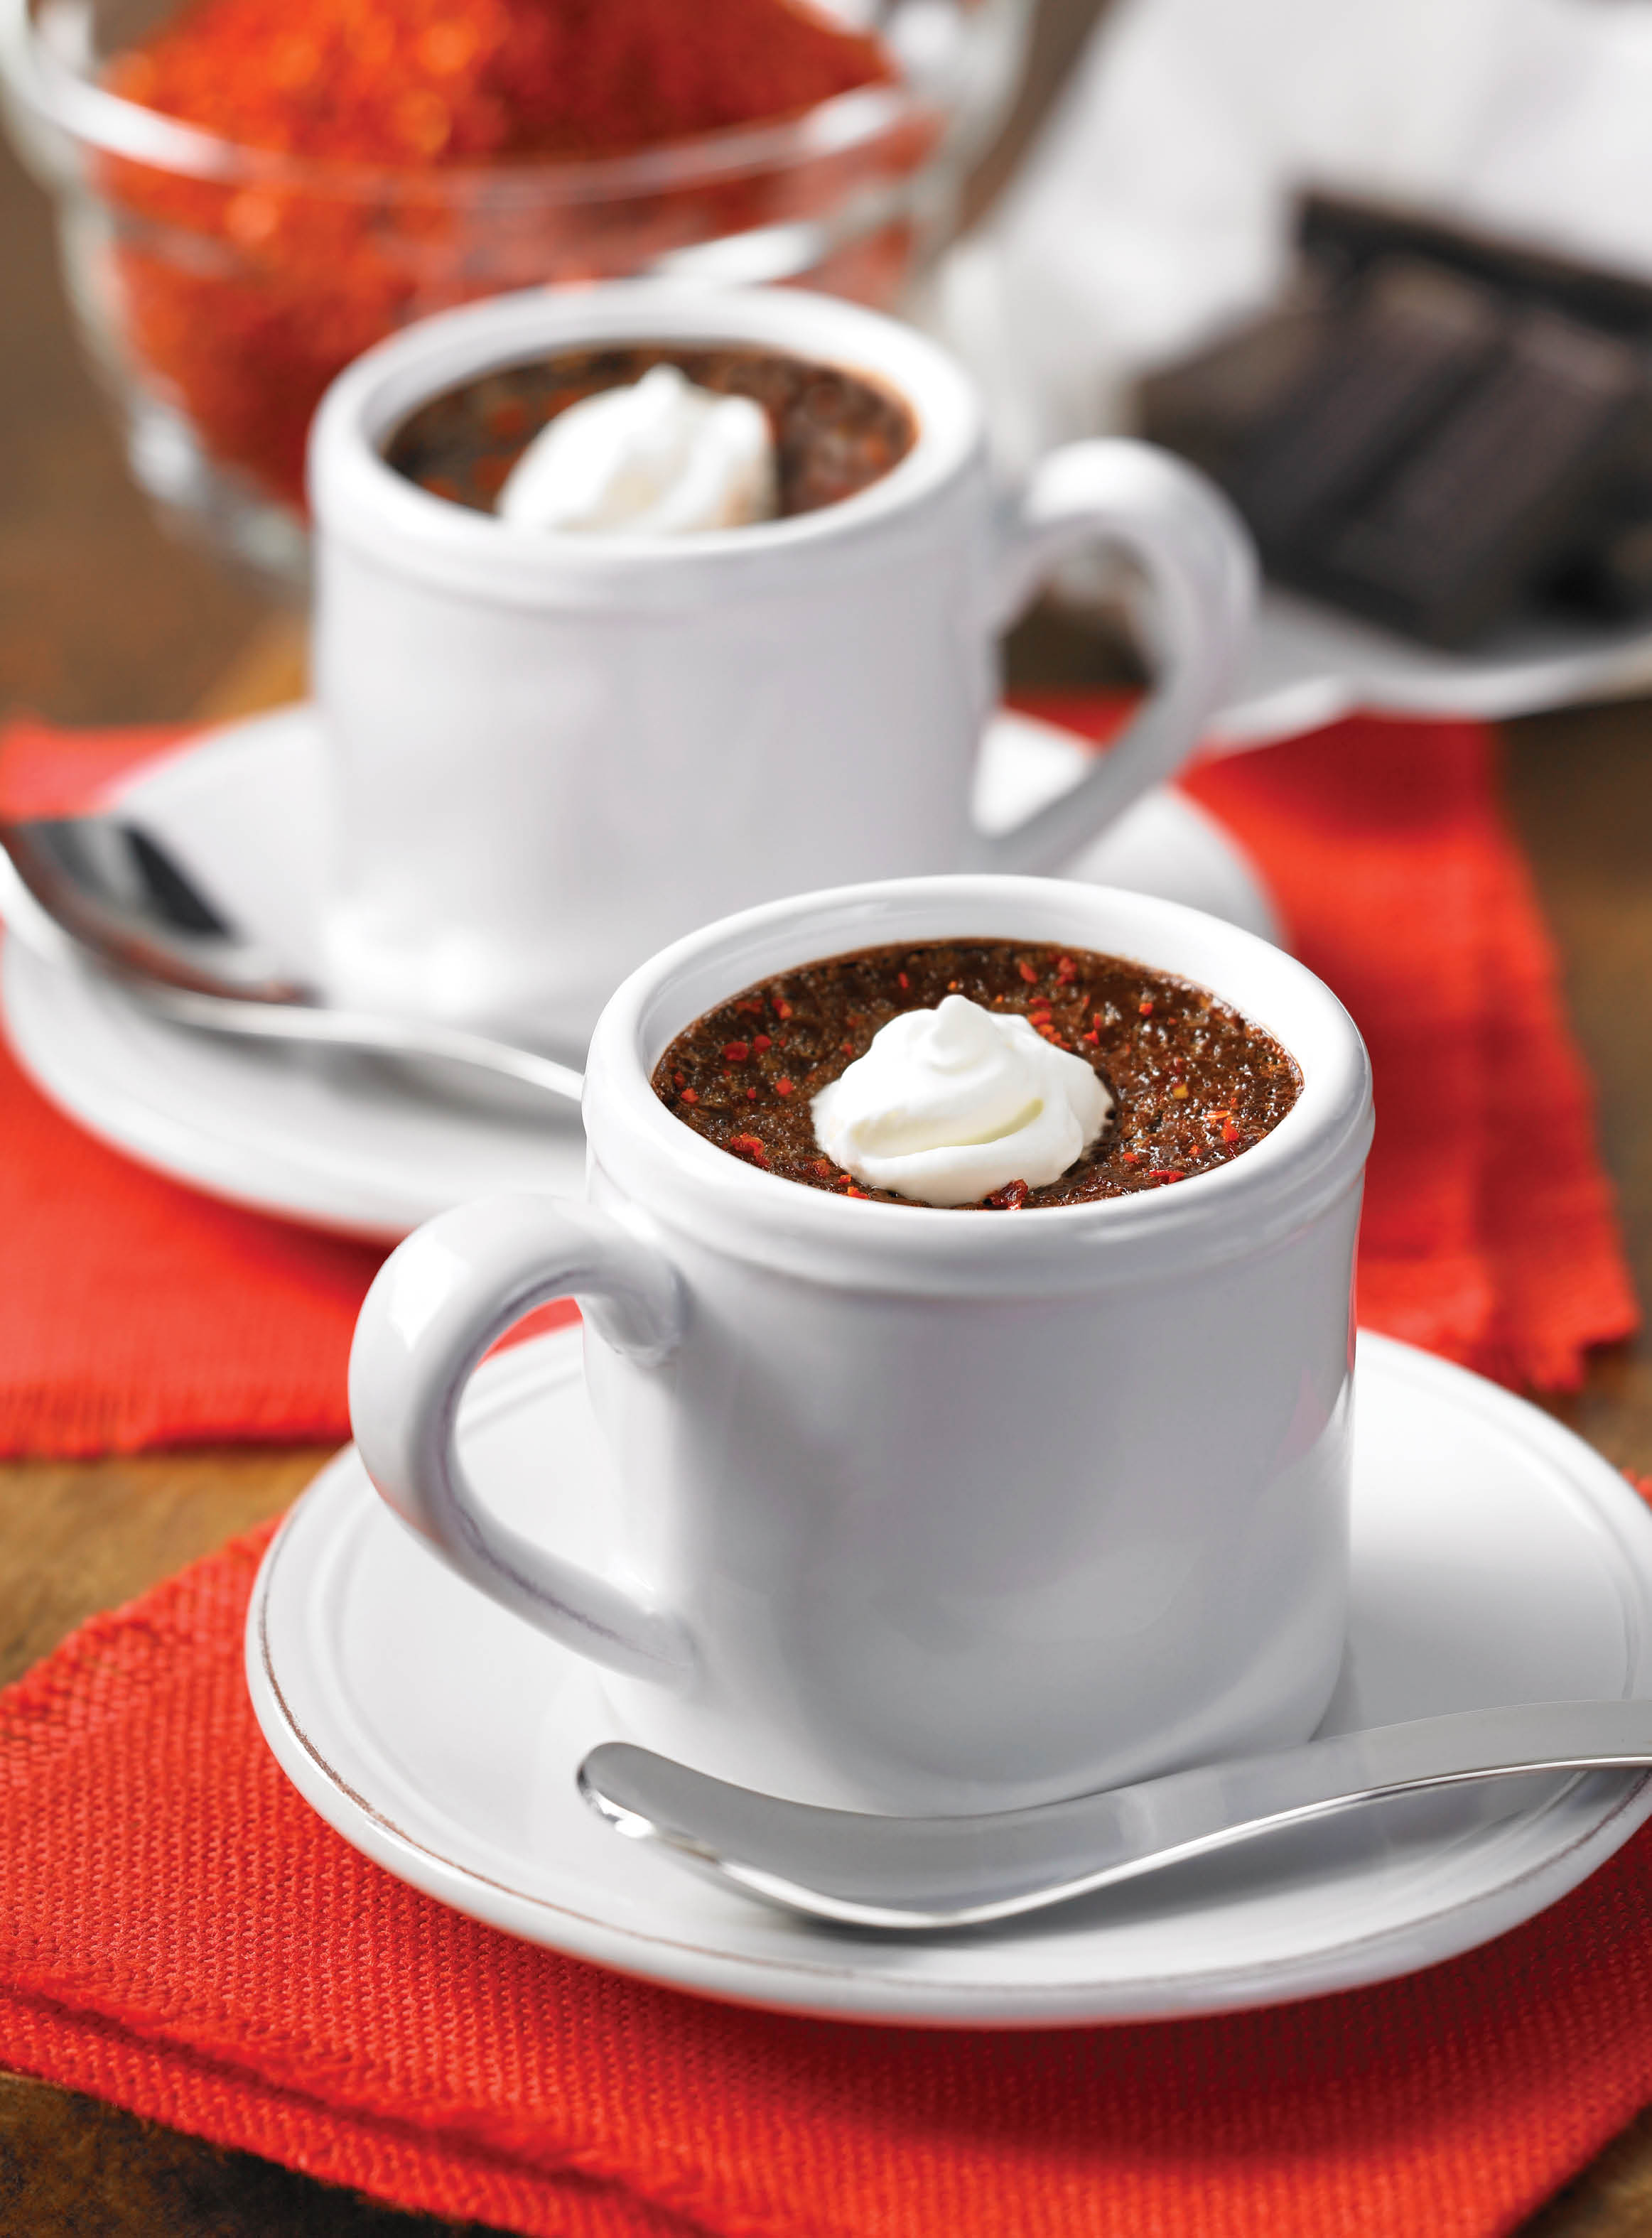 Chile-Spiked Chocolate Pots - Desserts Required